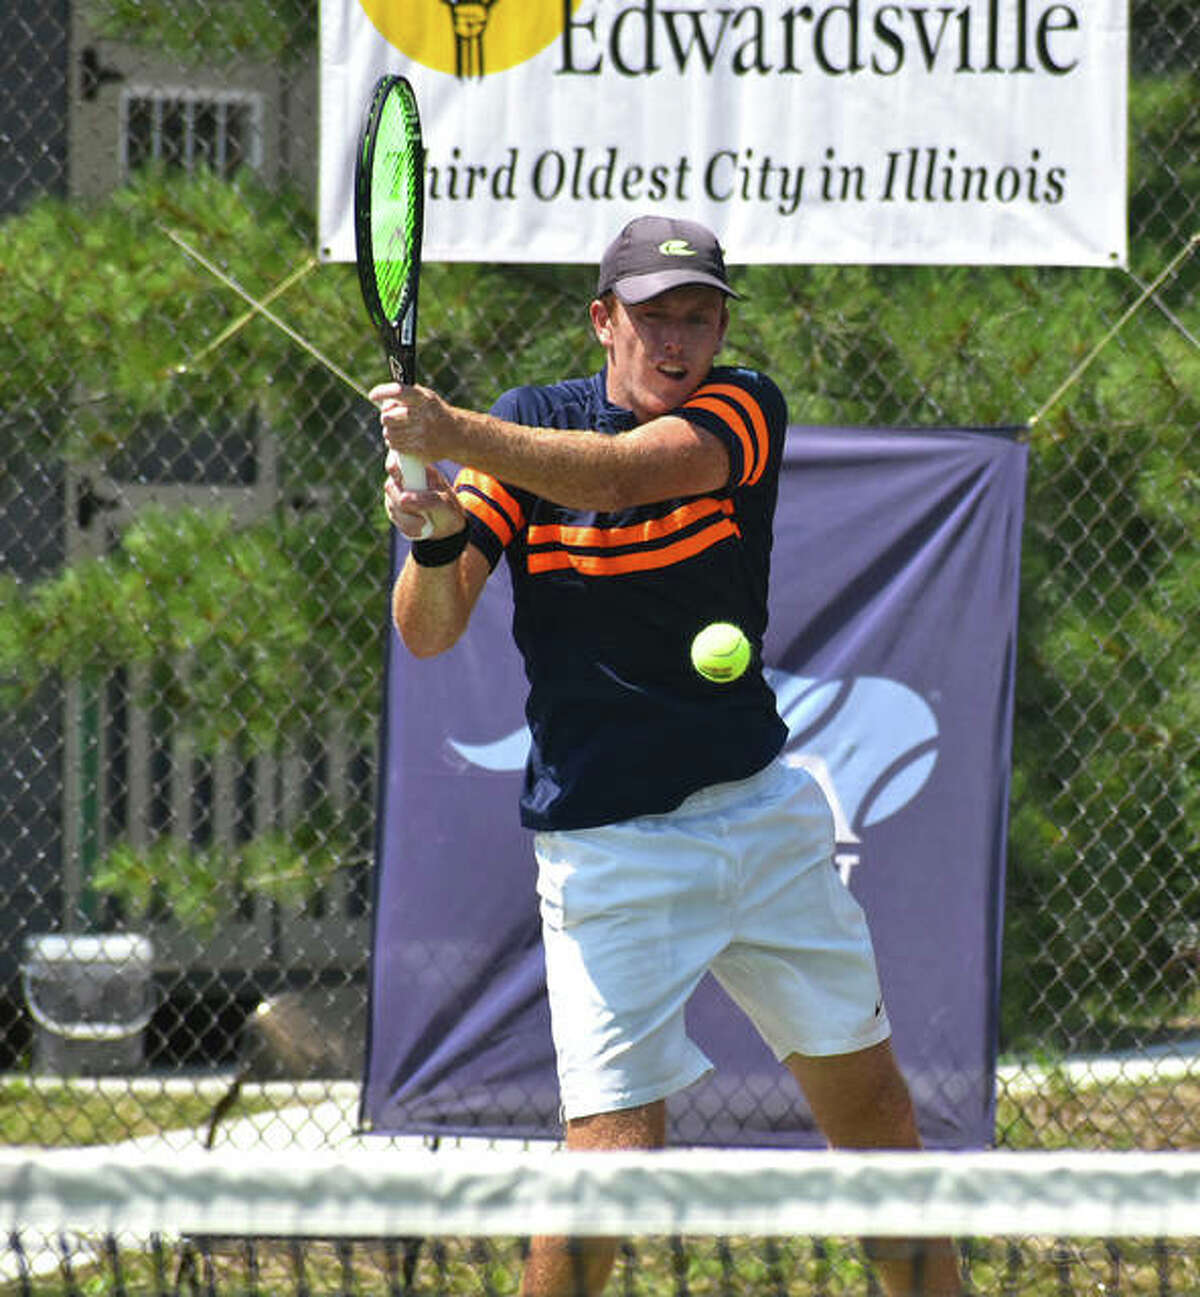 Reese Stalder connects for a backhand shot during the first set of the doubles championship match at the Edwardsville Futures on Saturday.